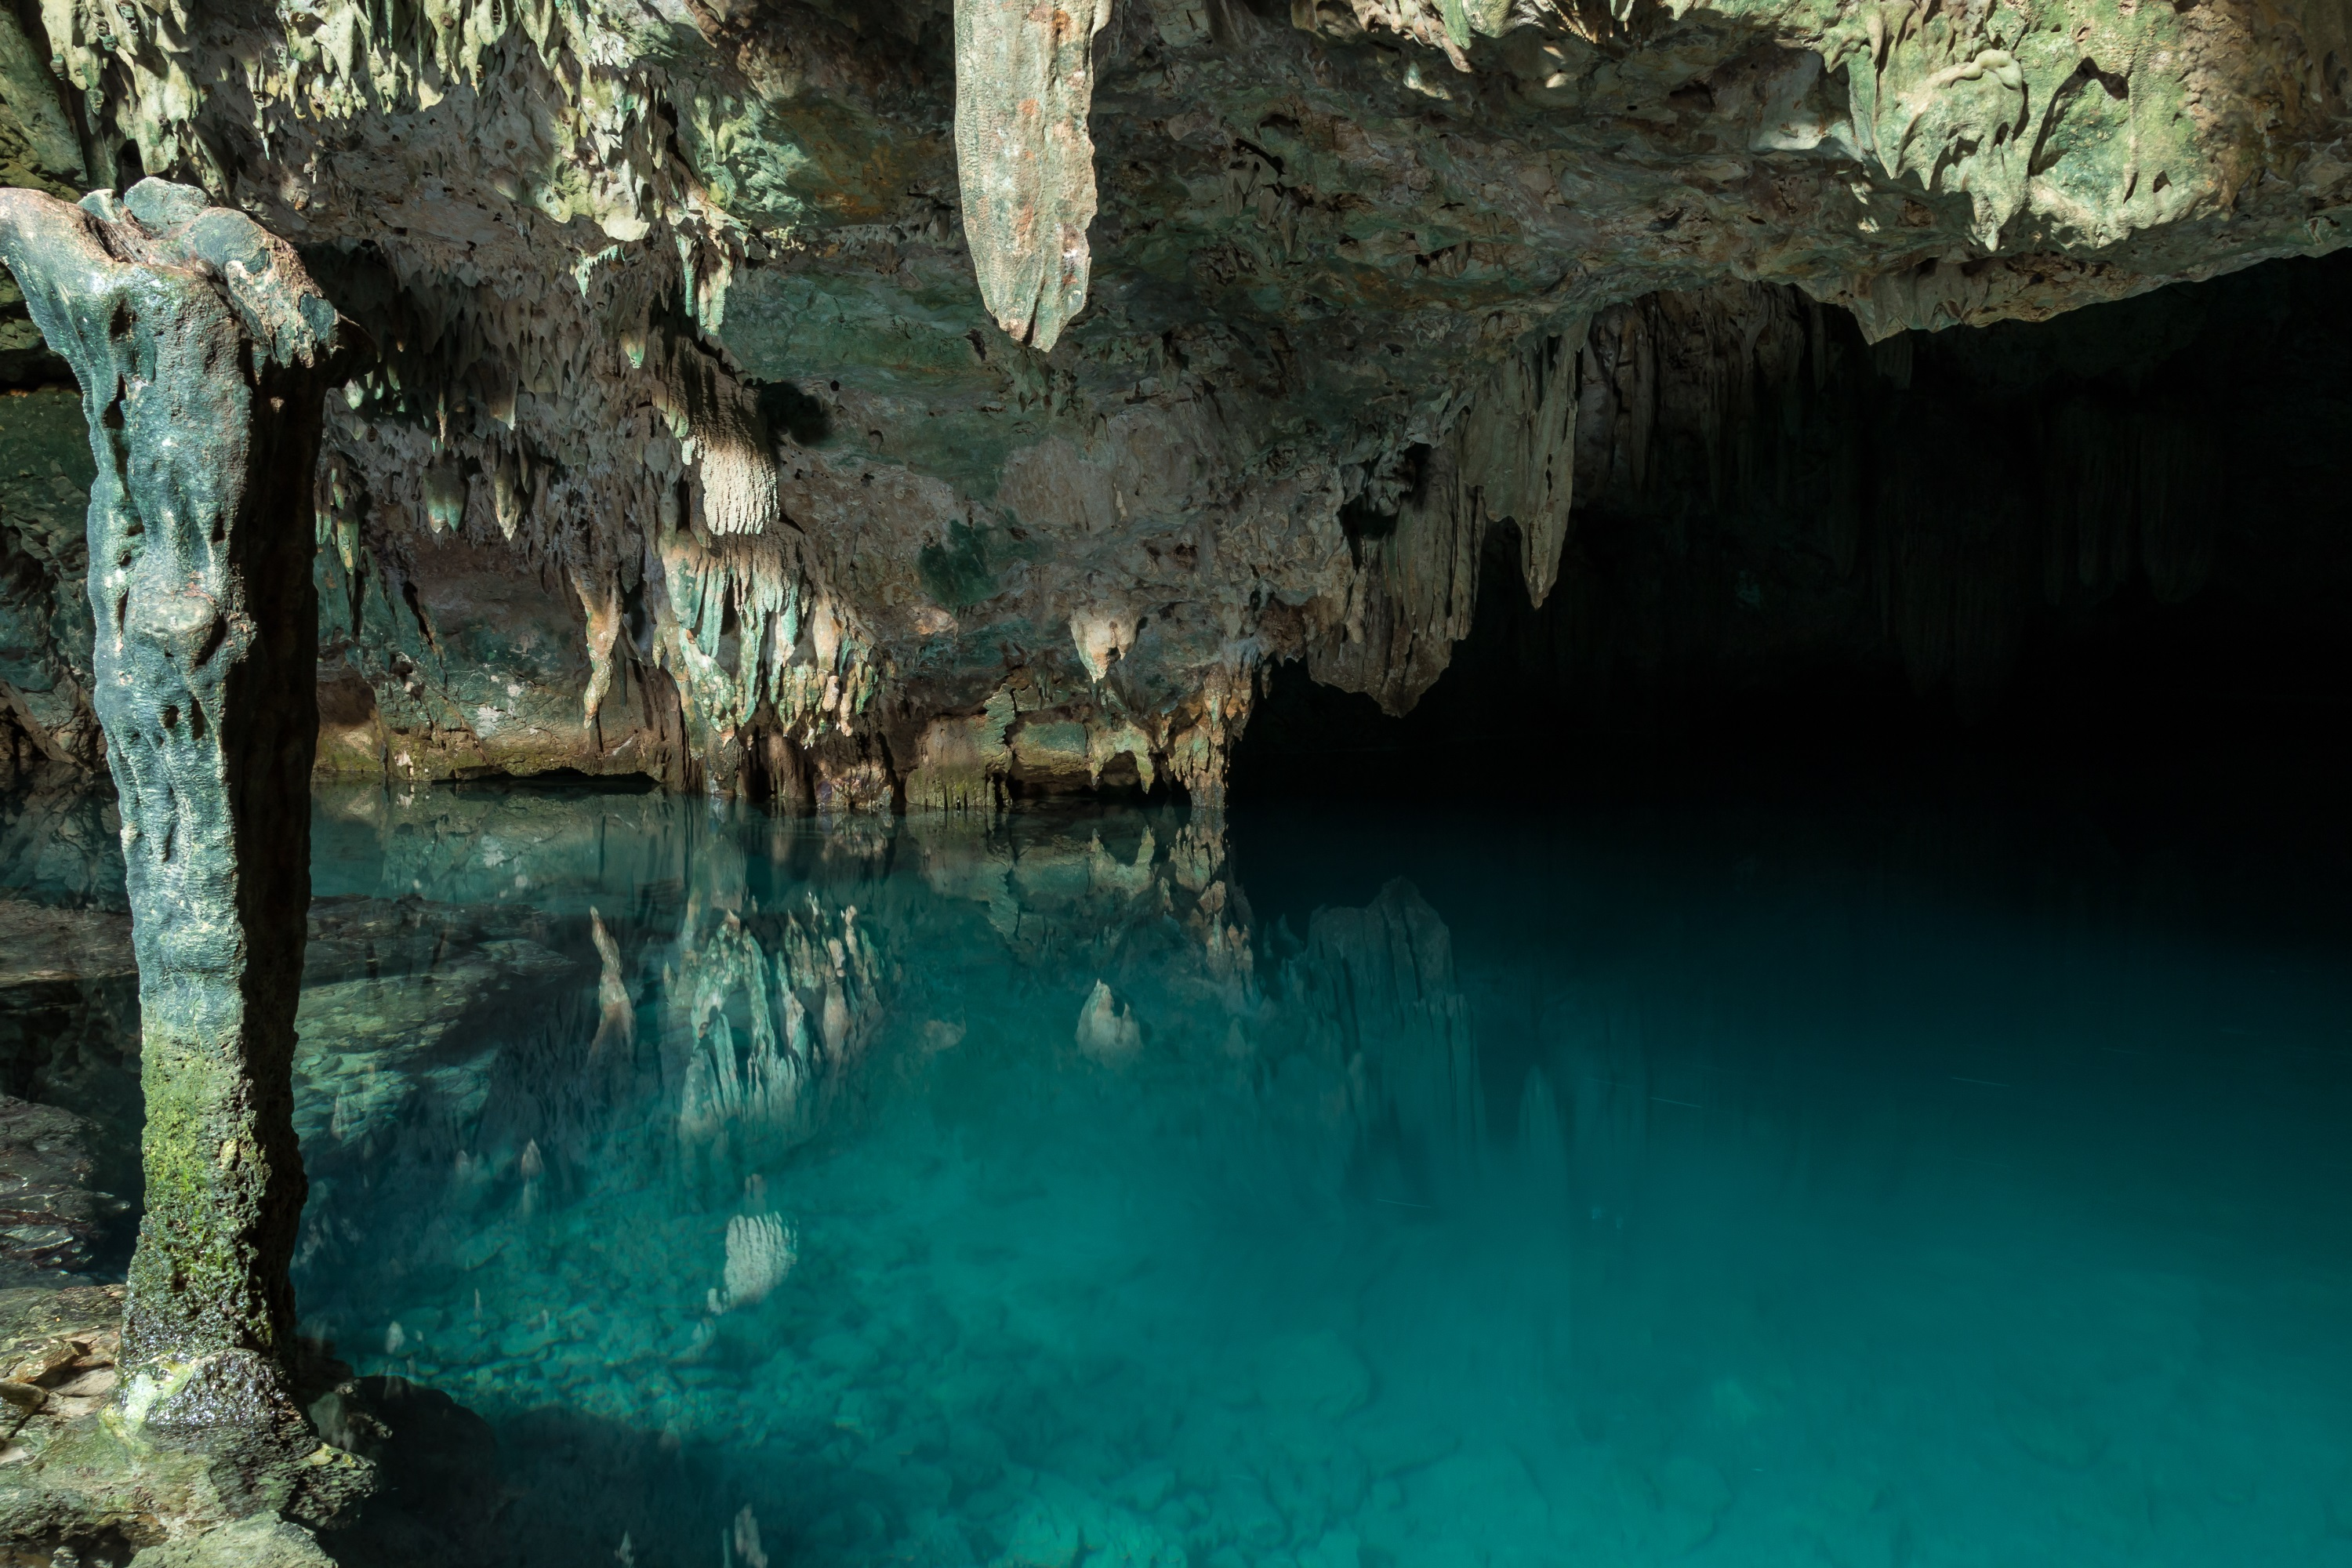 Gua Rangko and Batu Cermin - caves near Labuan Bajo